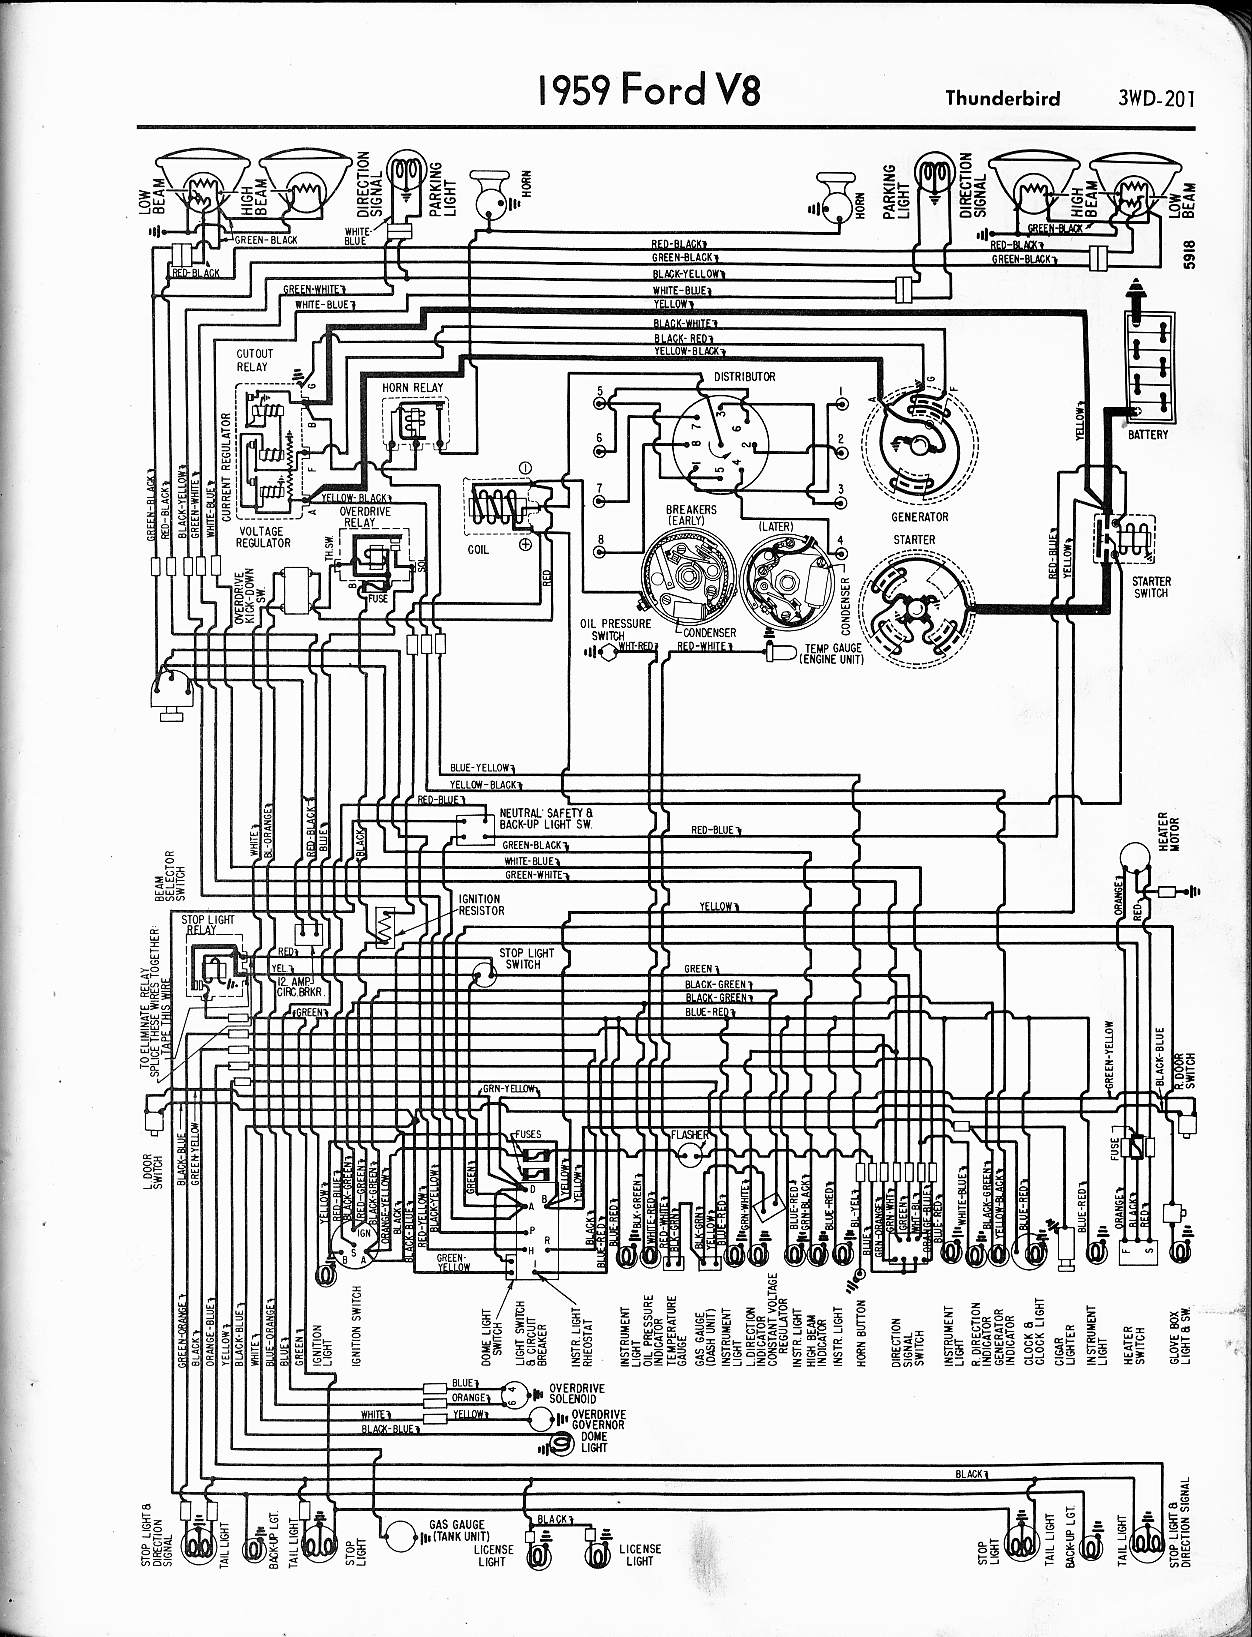 ebdd030 1956 ford tractor wiring diagram free download | wiring library  wiring library